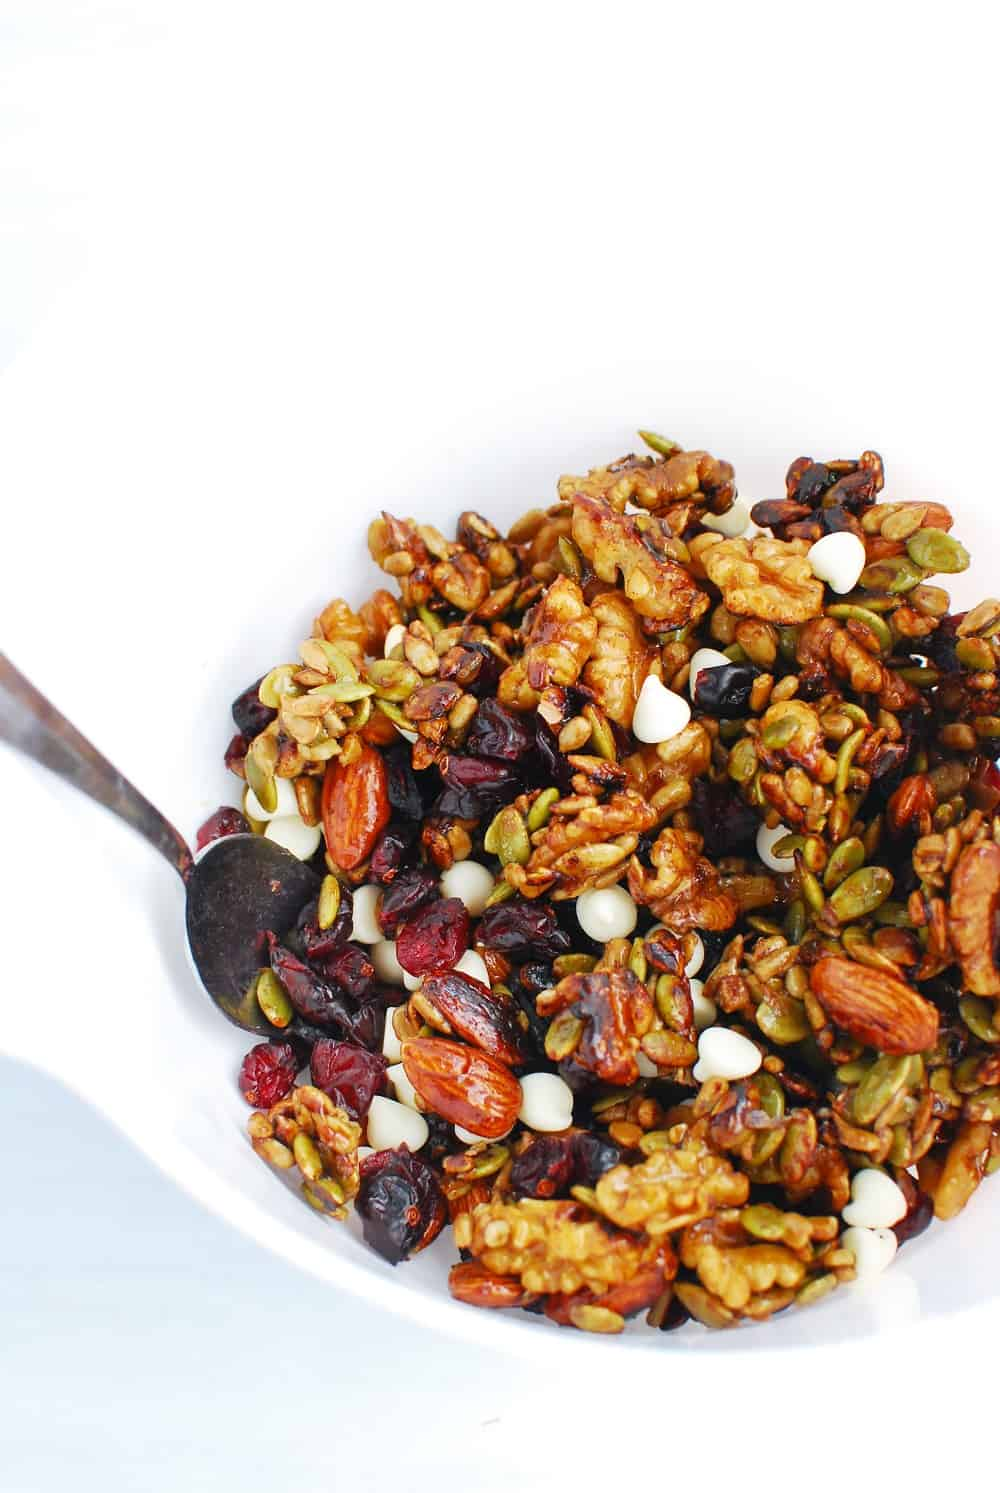 mixing up all the ingredients for fall trail mix in a bowl